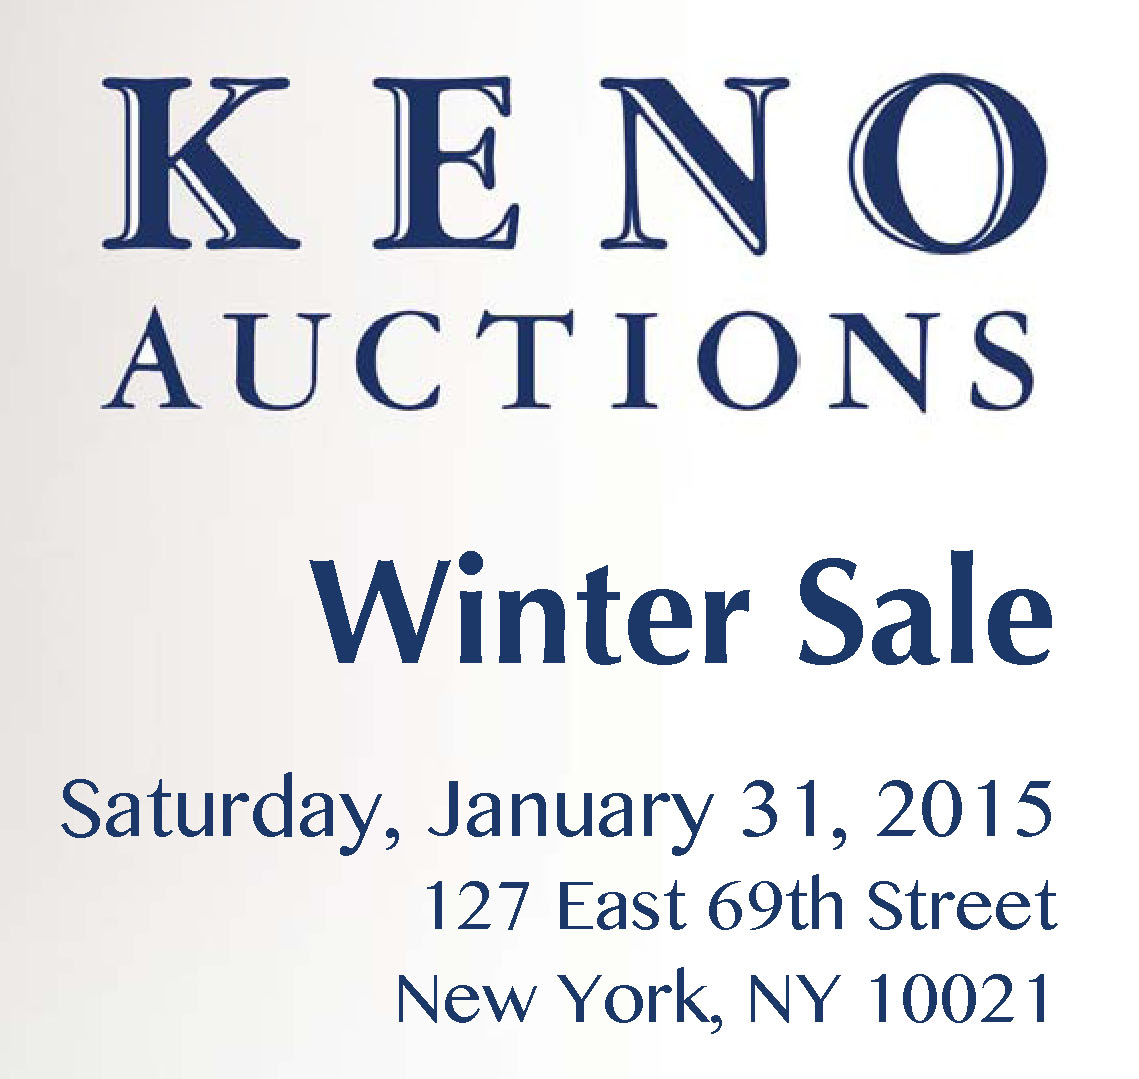 Keno Auctions Winter Sale